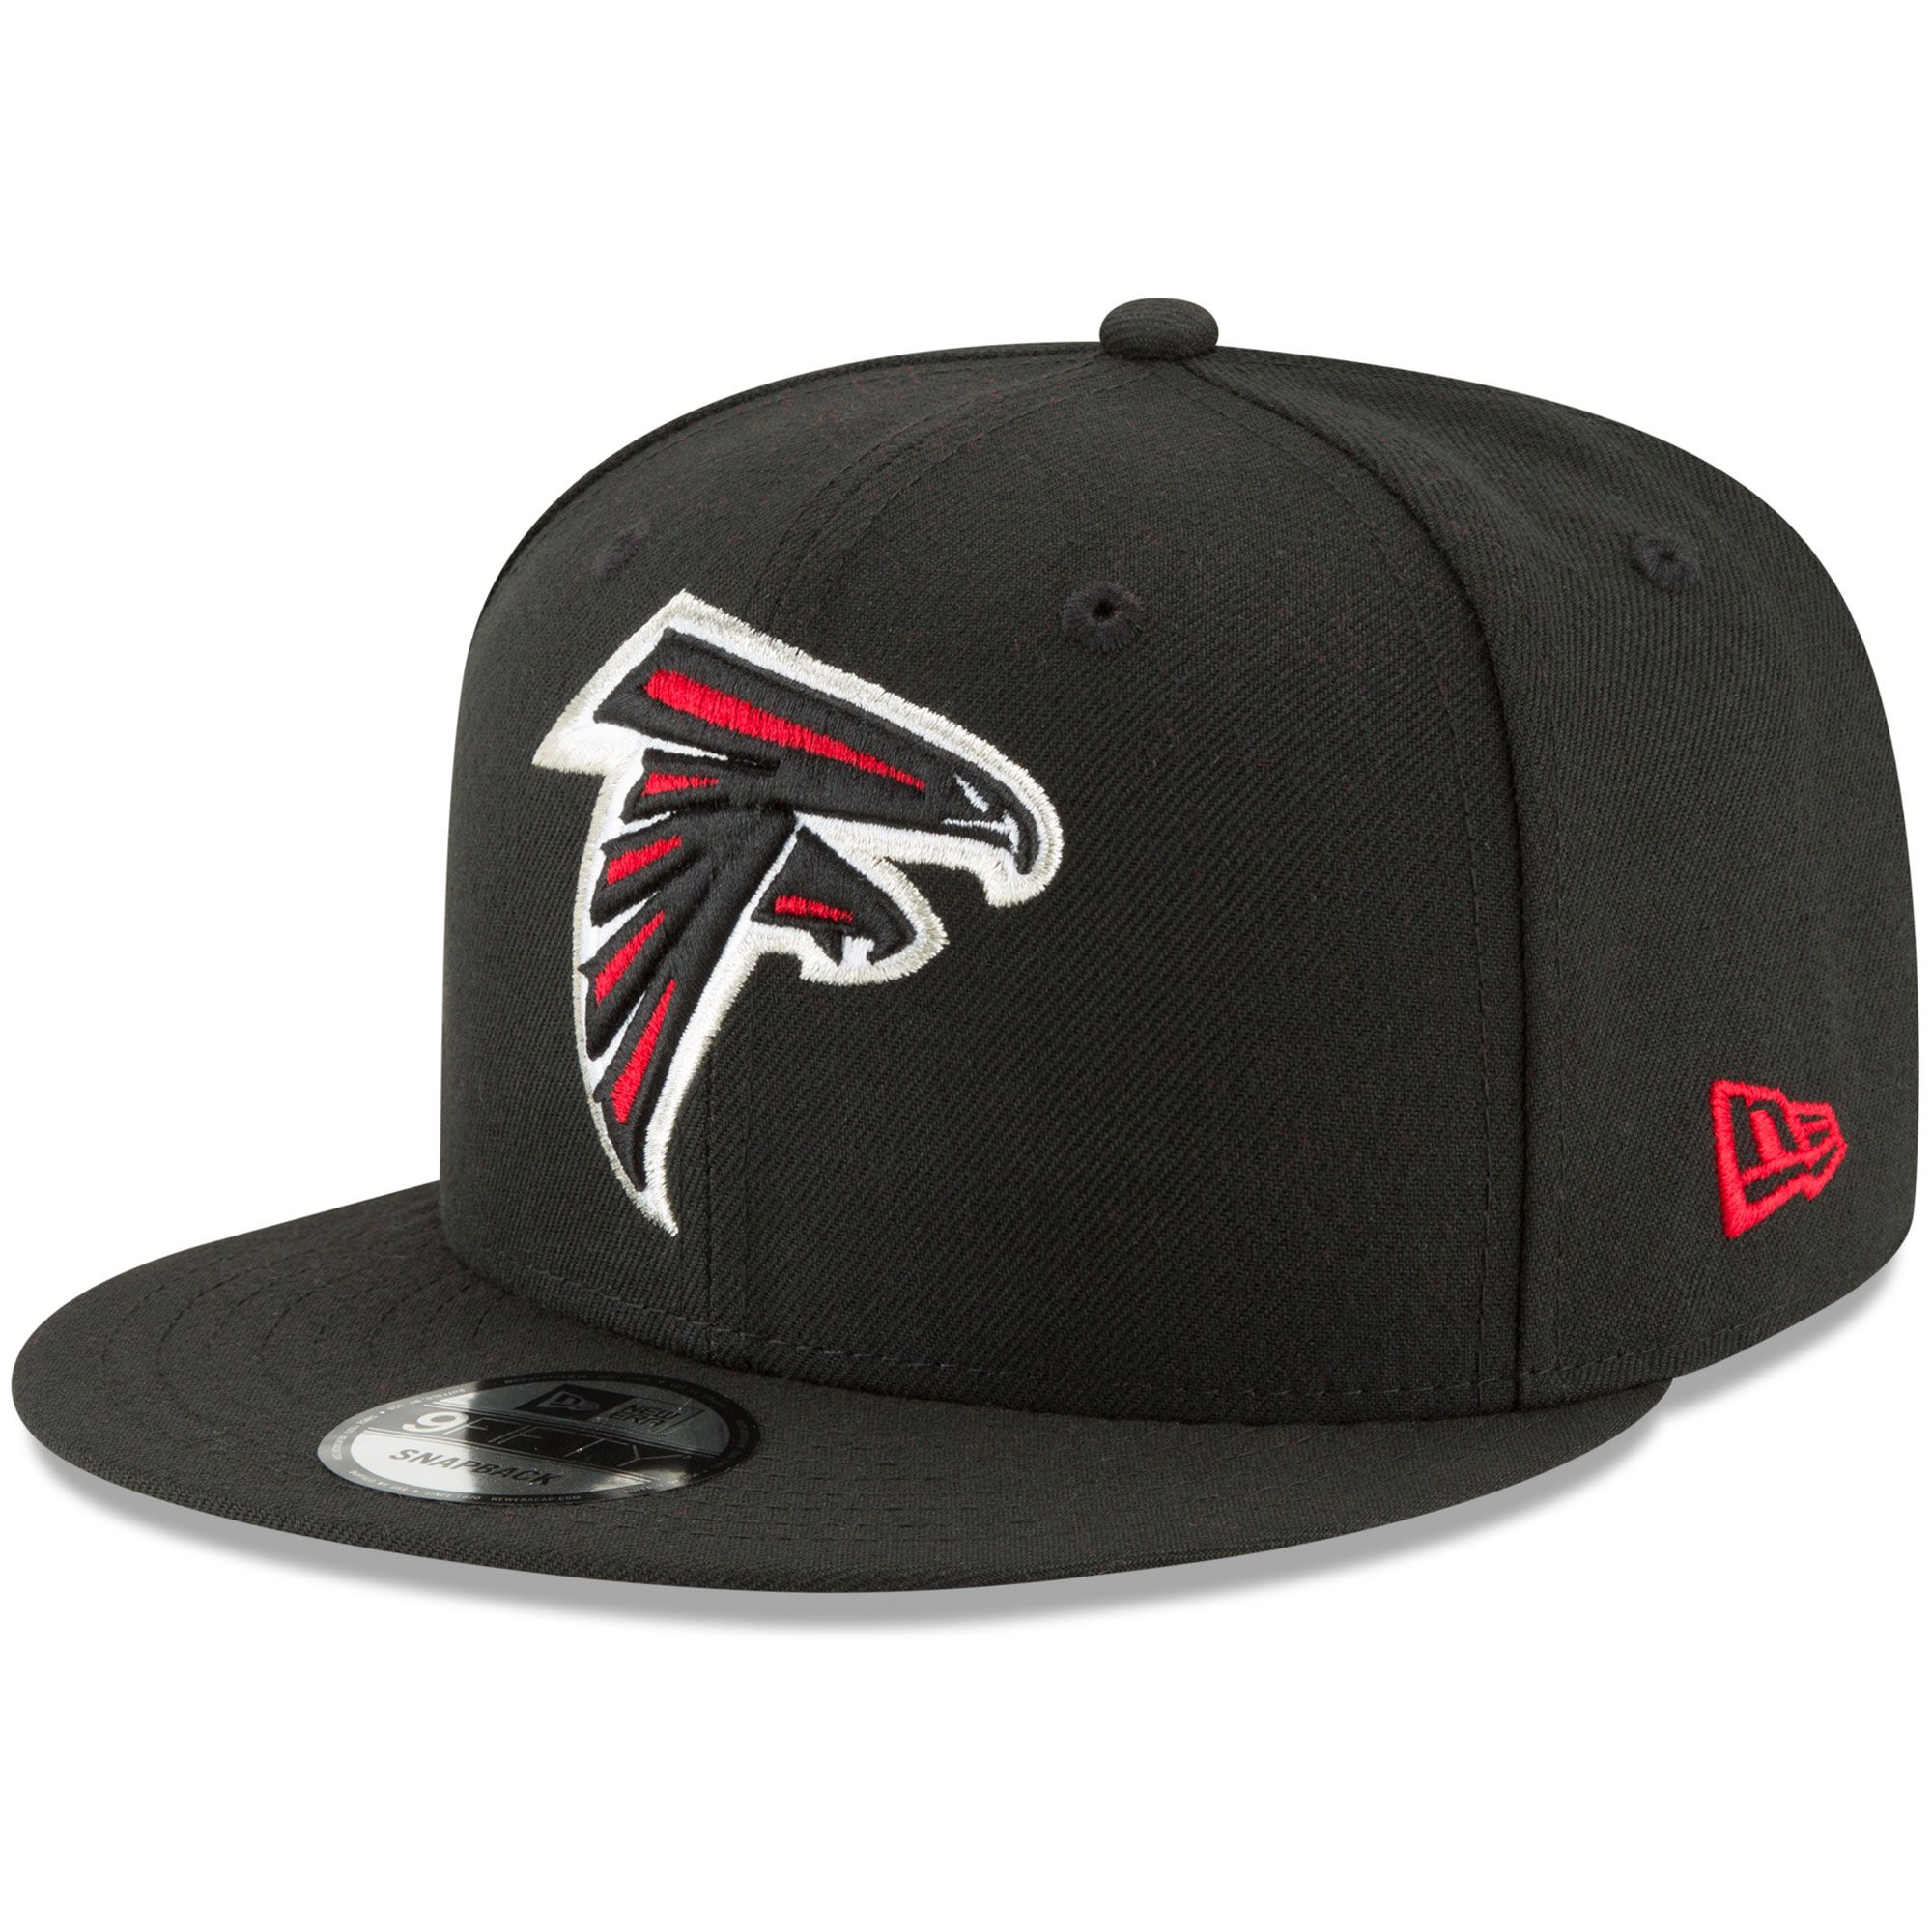 Atlanta Falcons New Era Basic 9fifty Adjustable Snapback Hat Black In 2020 Hats For Men Snapback Hats Atlanta Falcons Gear